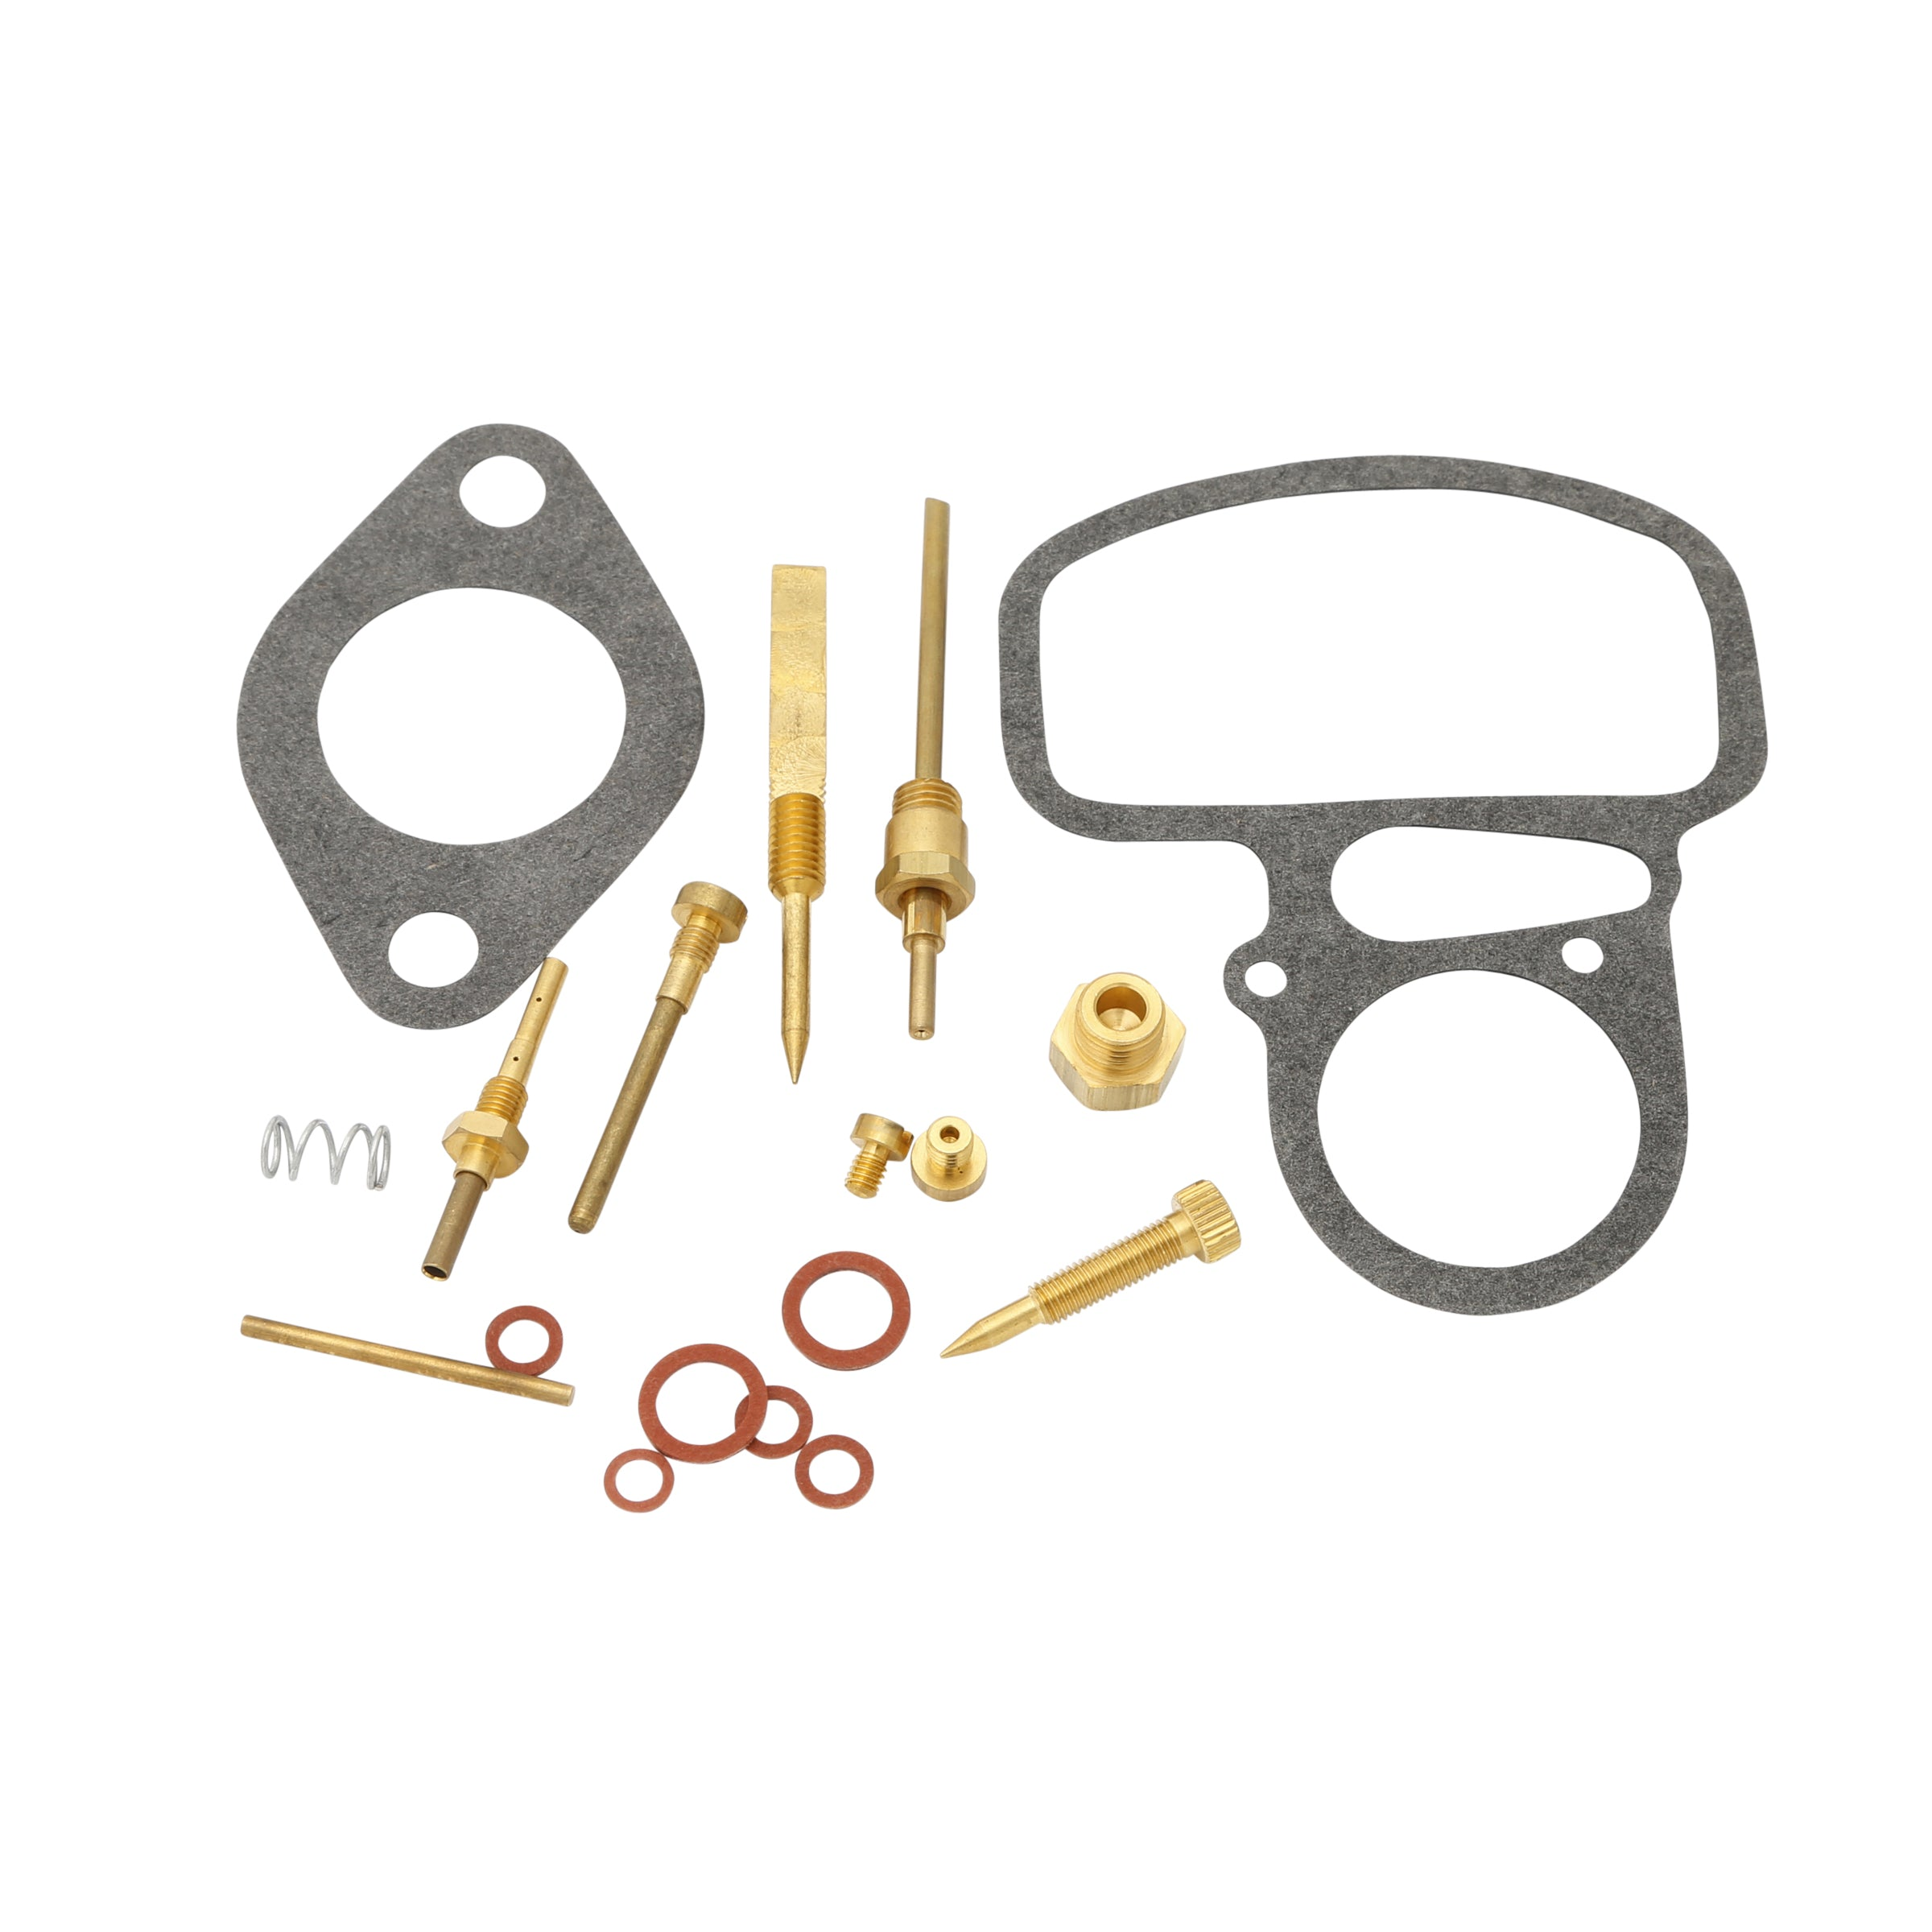 Carburetor Rebuild Kit (Zenith) • 1932-34 4 Cylinder Model B